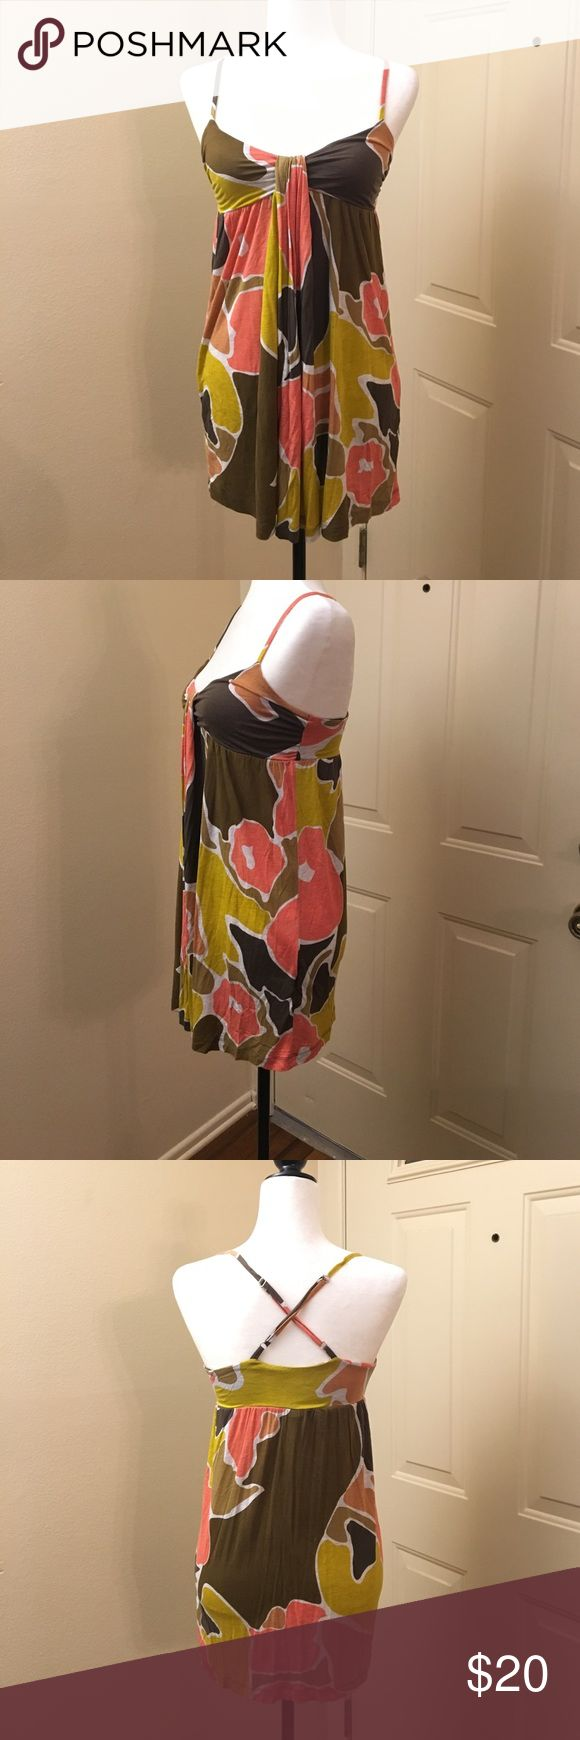 French Connection Dress Beautiful French Connection Dress in good condition. This dress looks super cute when worn as a tunic paired with leggings or skinny jeans. The straps are adjustable. French Connection Dresses Mini